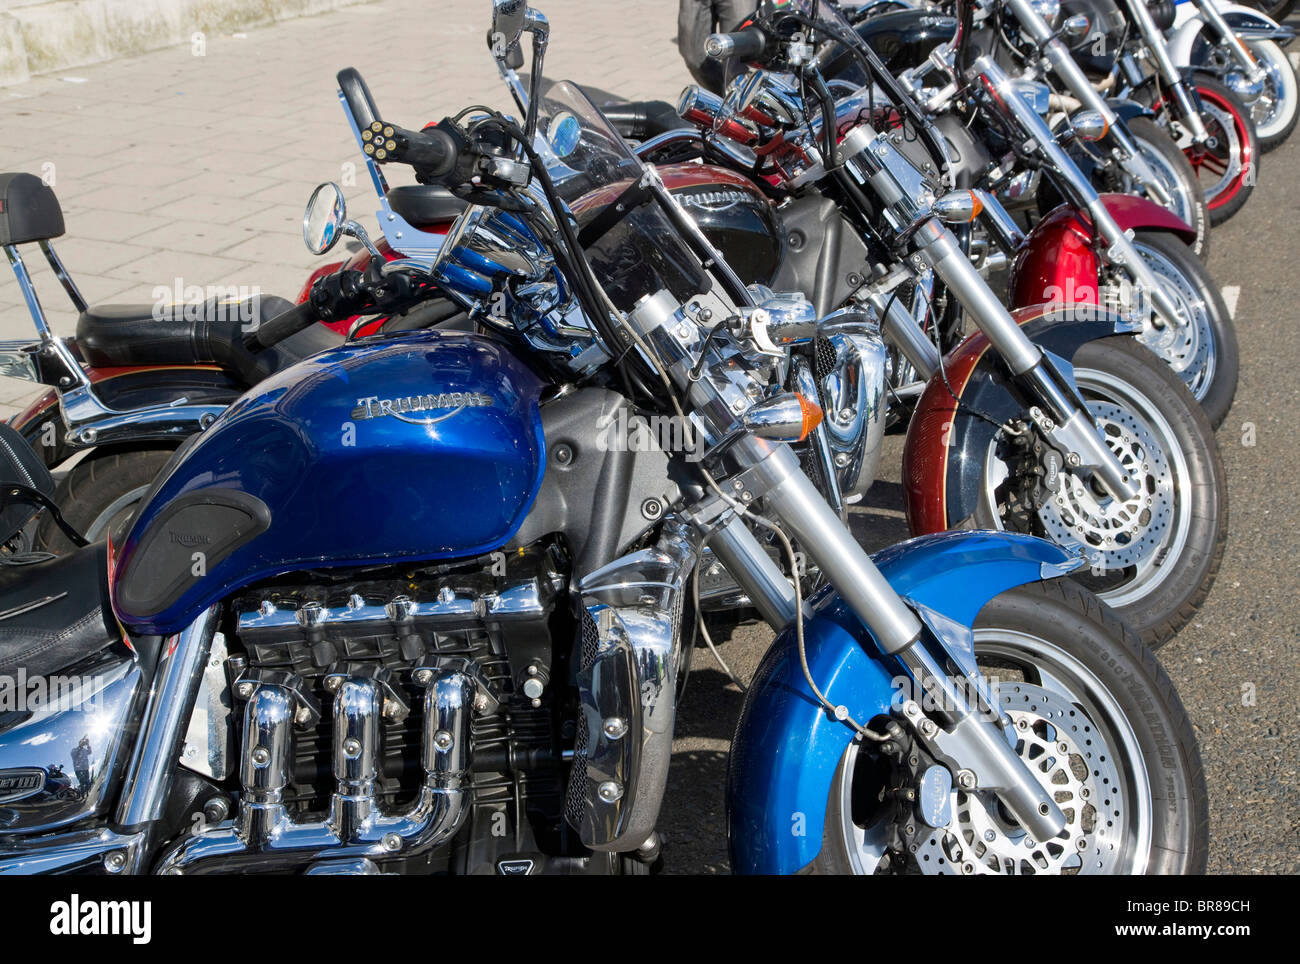 Motorcycles at a Rally in Brighton - Stock Image